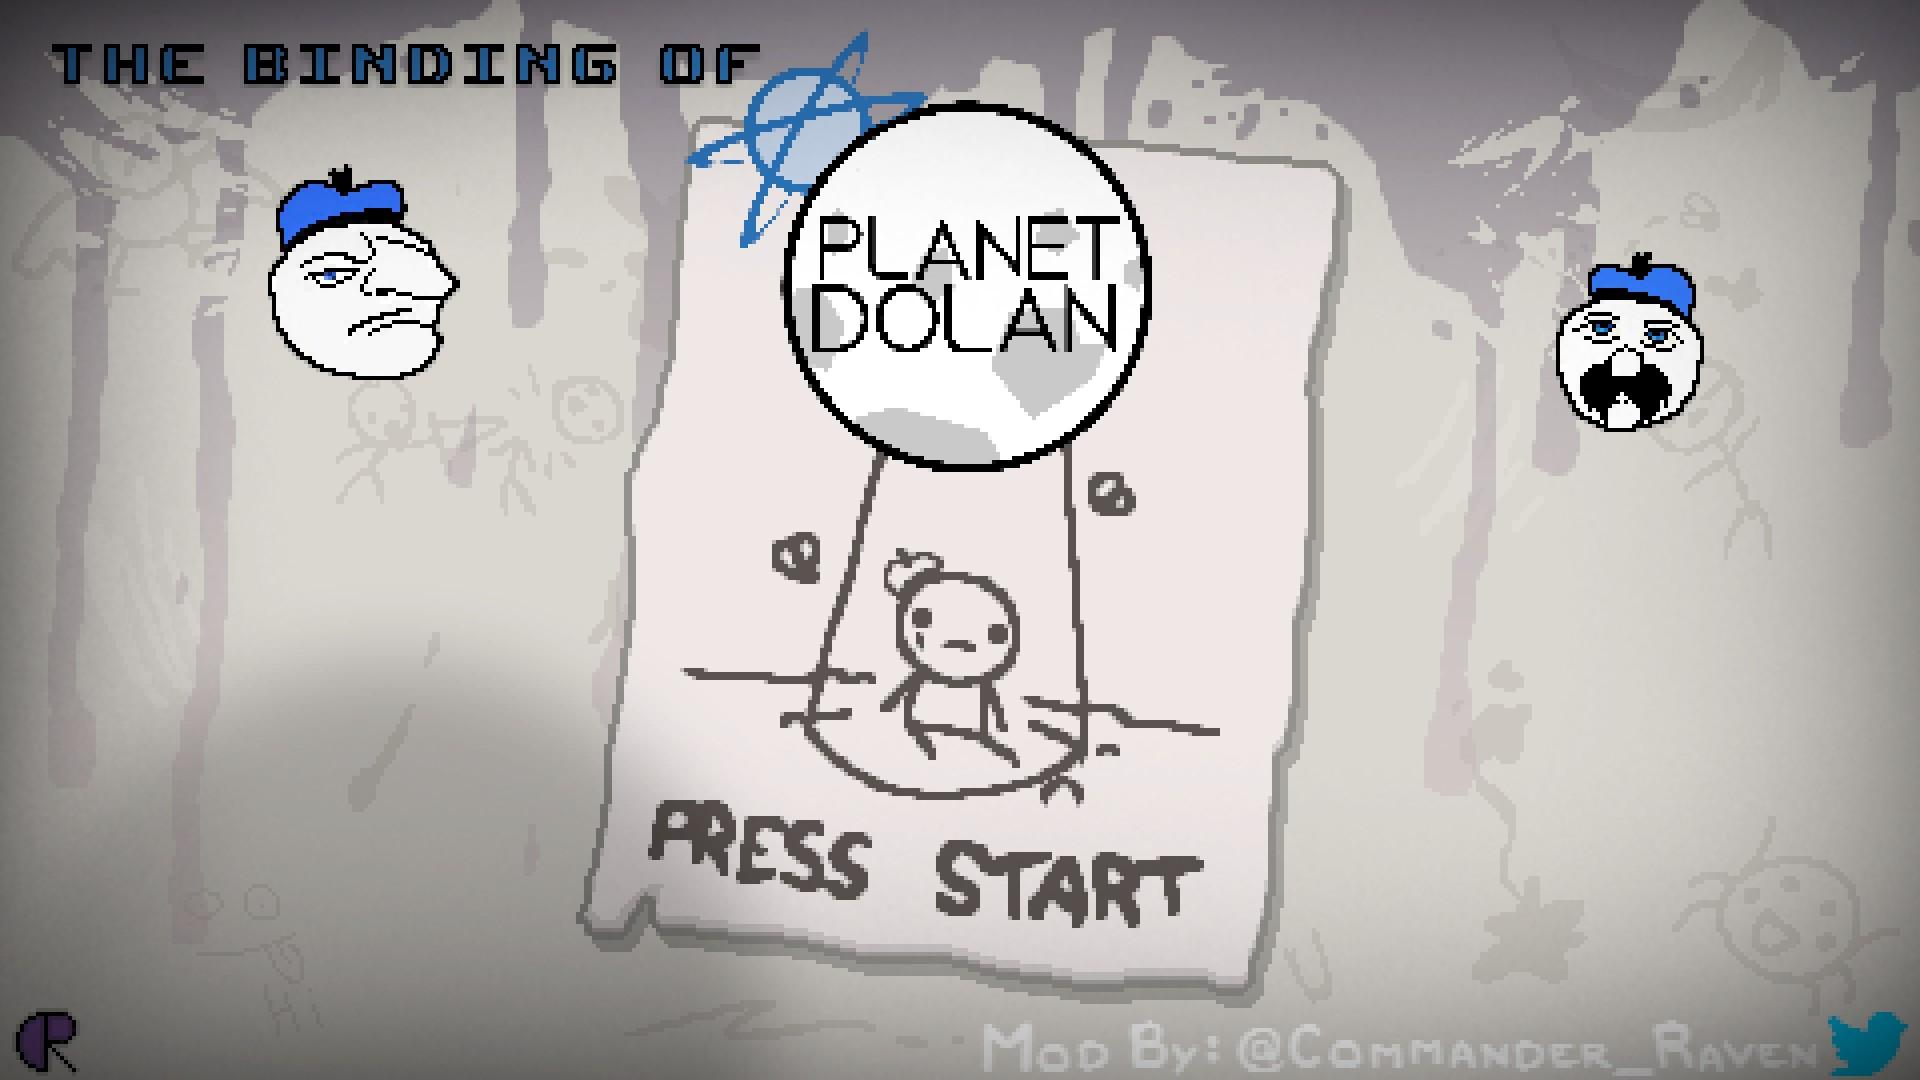 The Binding Of Planet Dolan Modding Of Isaac